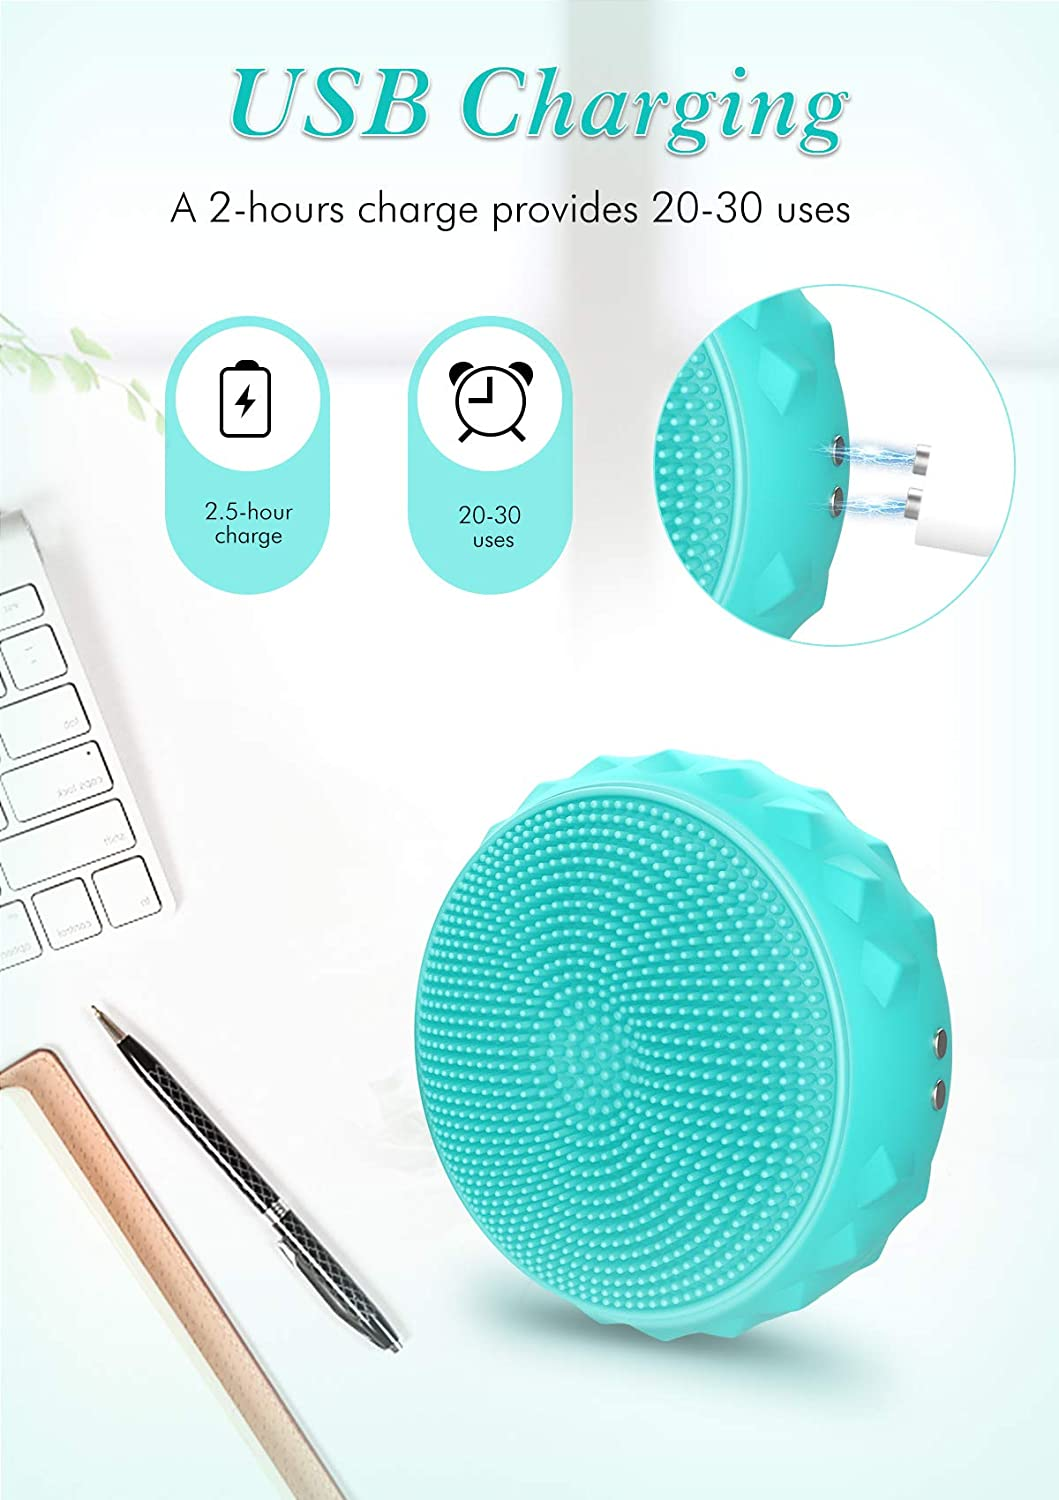 Facial Cleansing Brush with Heating/LED Light Therapy and Sonic Pulsation 3 in 1,Waterproof Silicone Face Brush with 3 Modes for Deep Cleansing, Gentle Exfoliating, Removing Blackhead, Massaging: Beauty